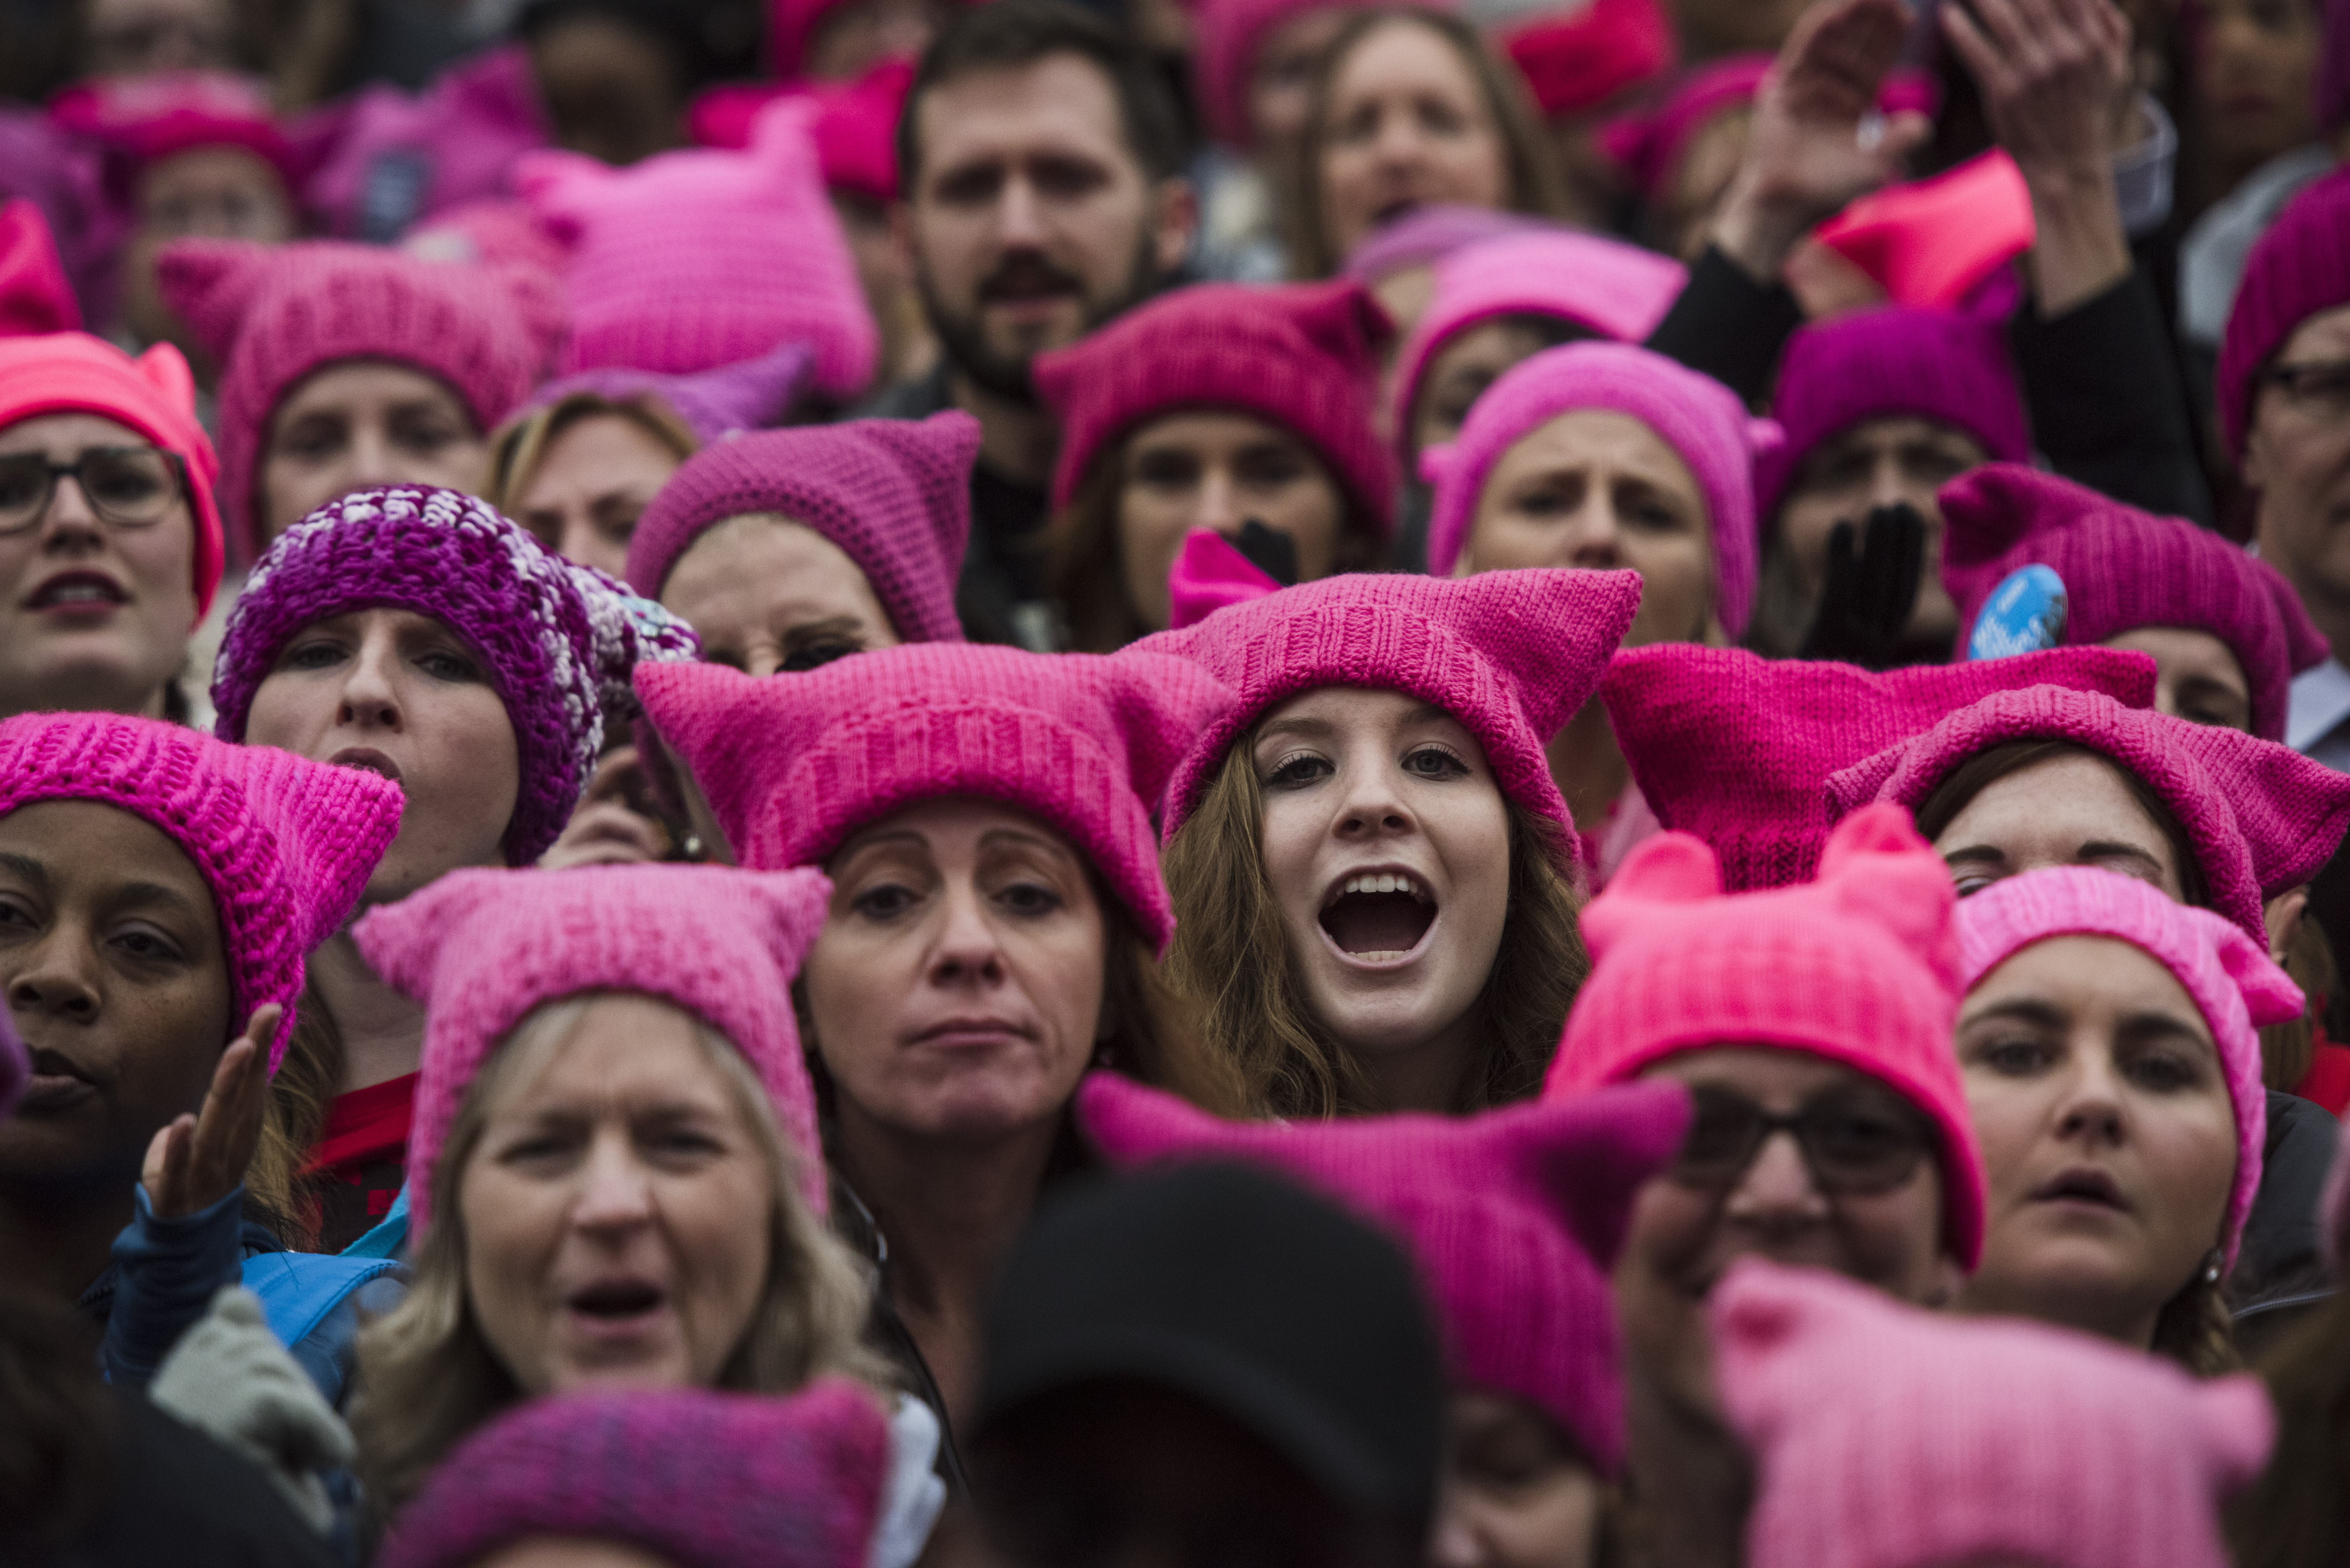 The Women's March is riddled with divisions. But that doesn't mean feminism is in crisis.